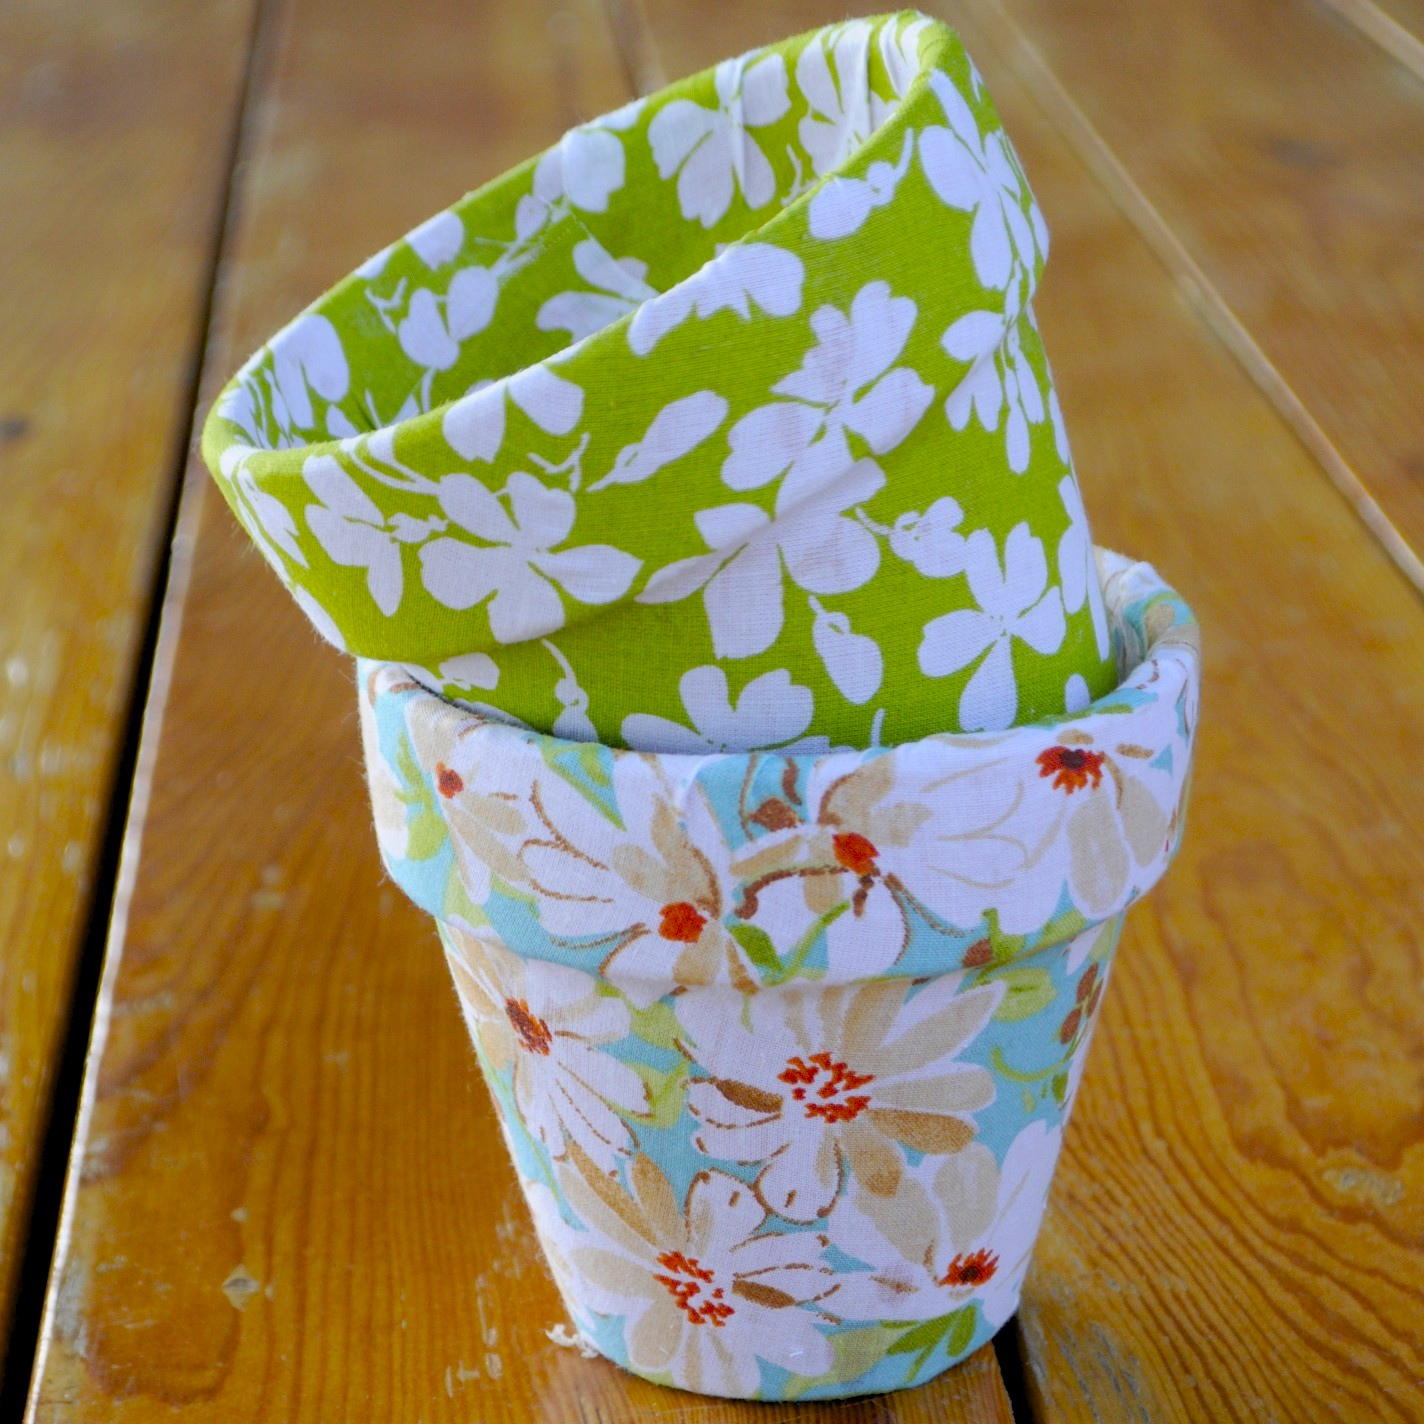 Little Sloth Fabric Flower Pots Diy - Blumentopf Dekorieren